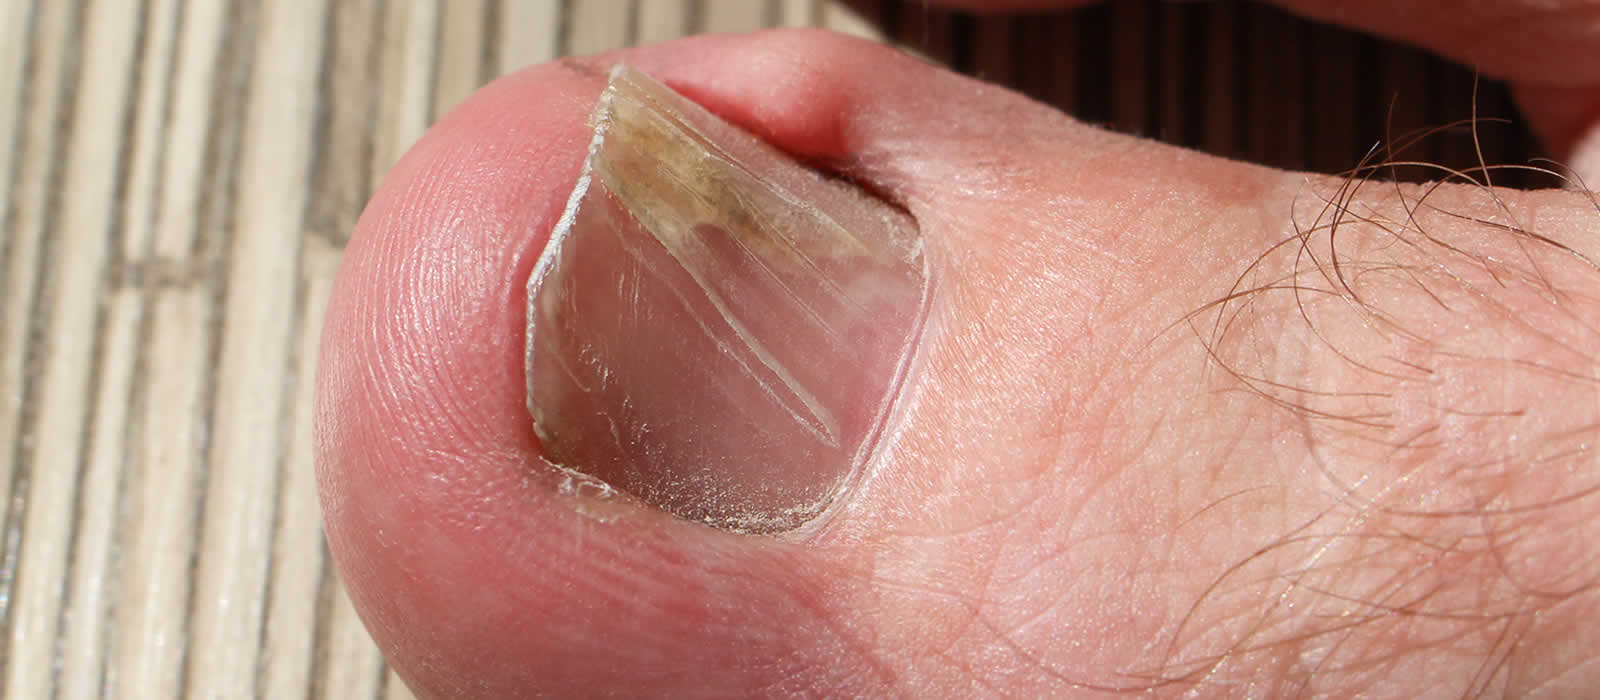 Ingrown Toenail: Symptoms, Causes, and Treatments | Dr. Geller